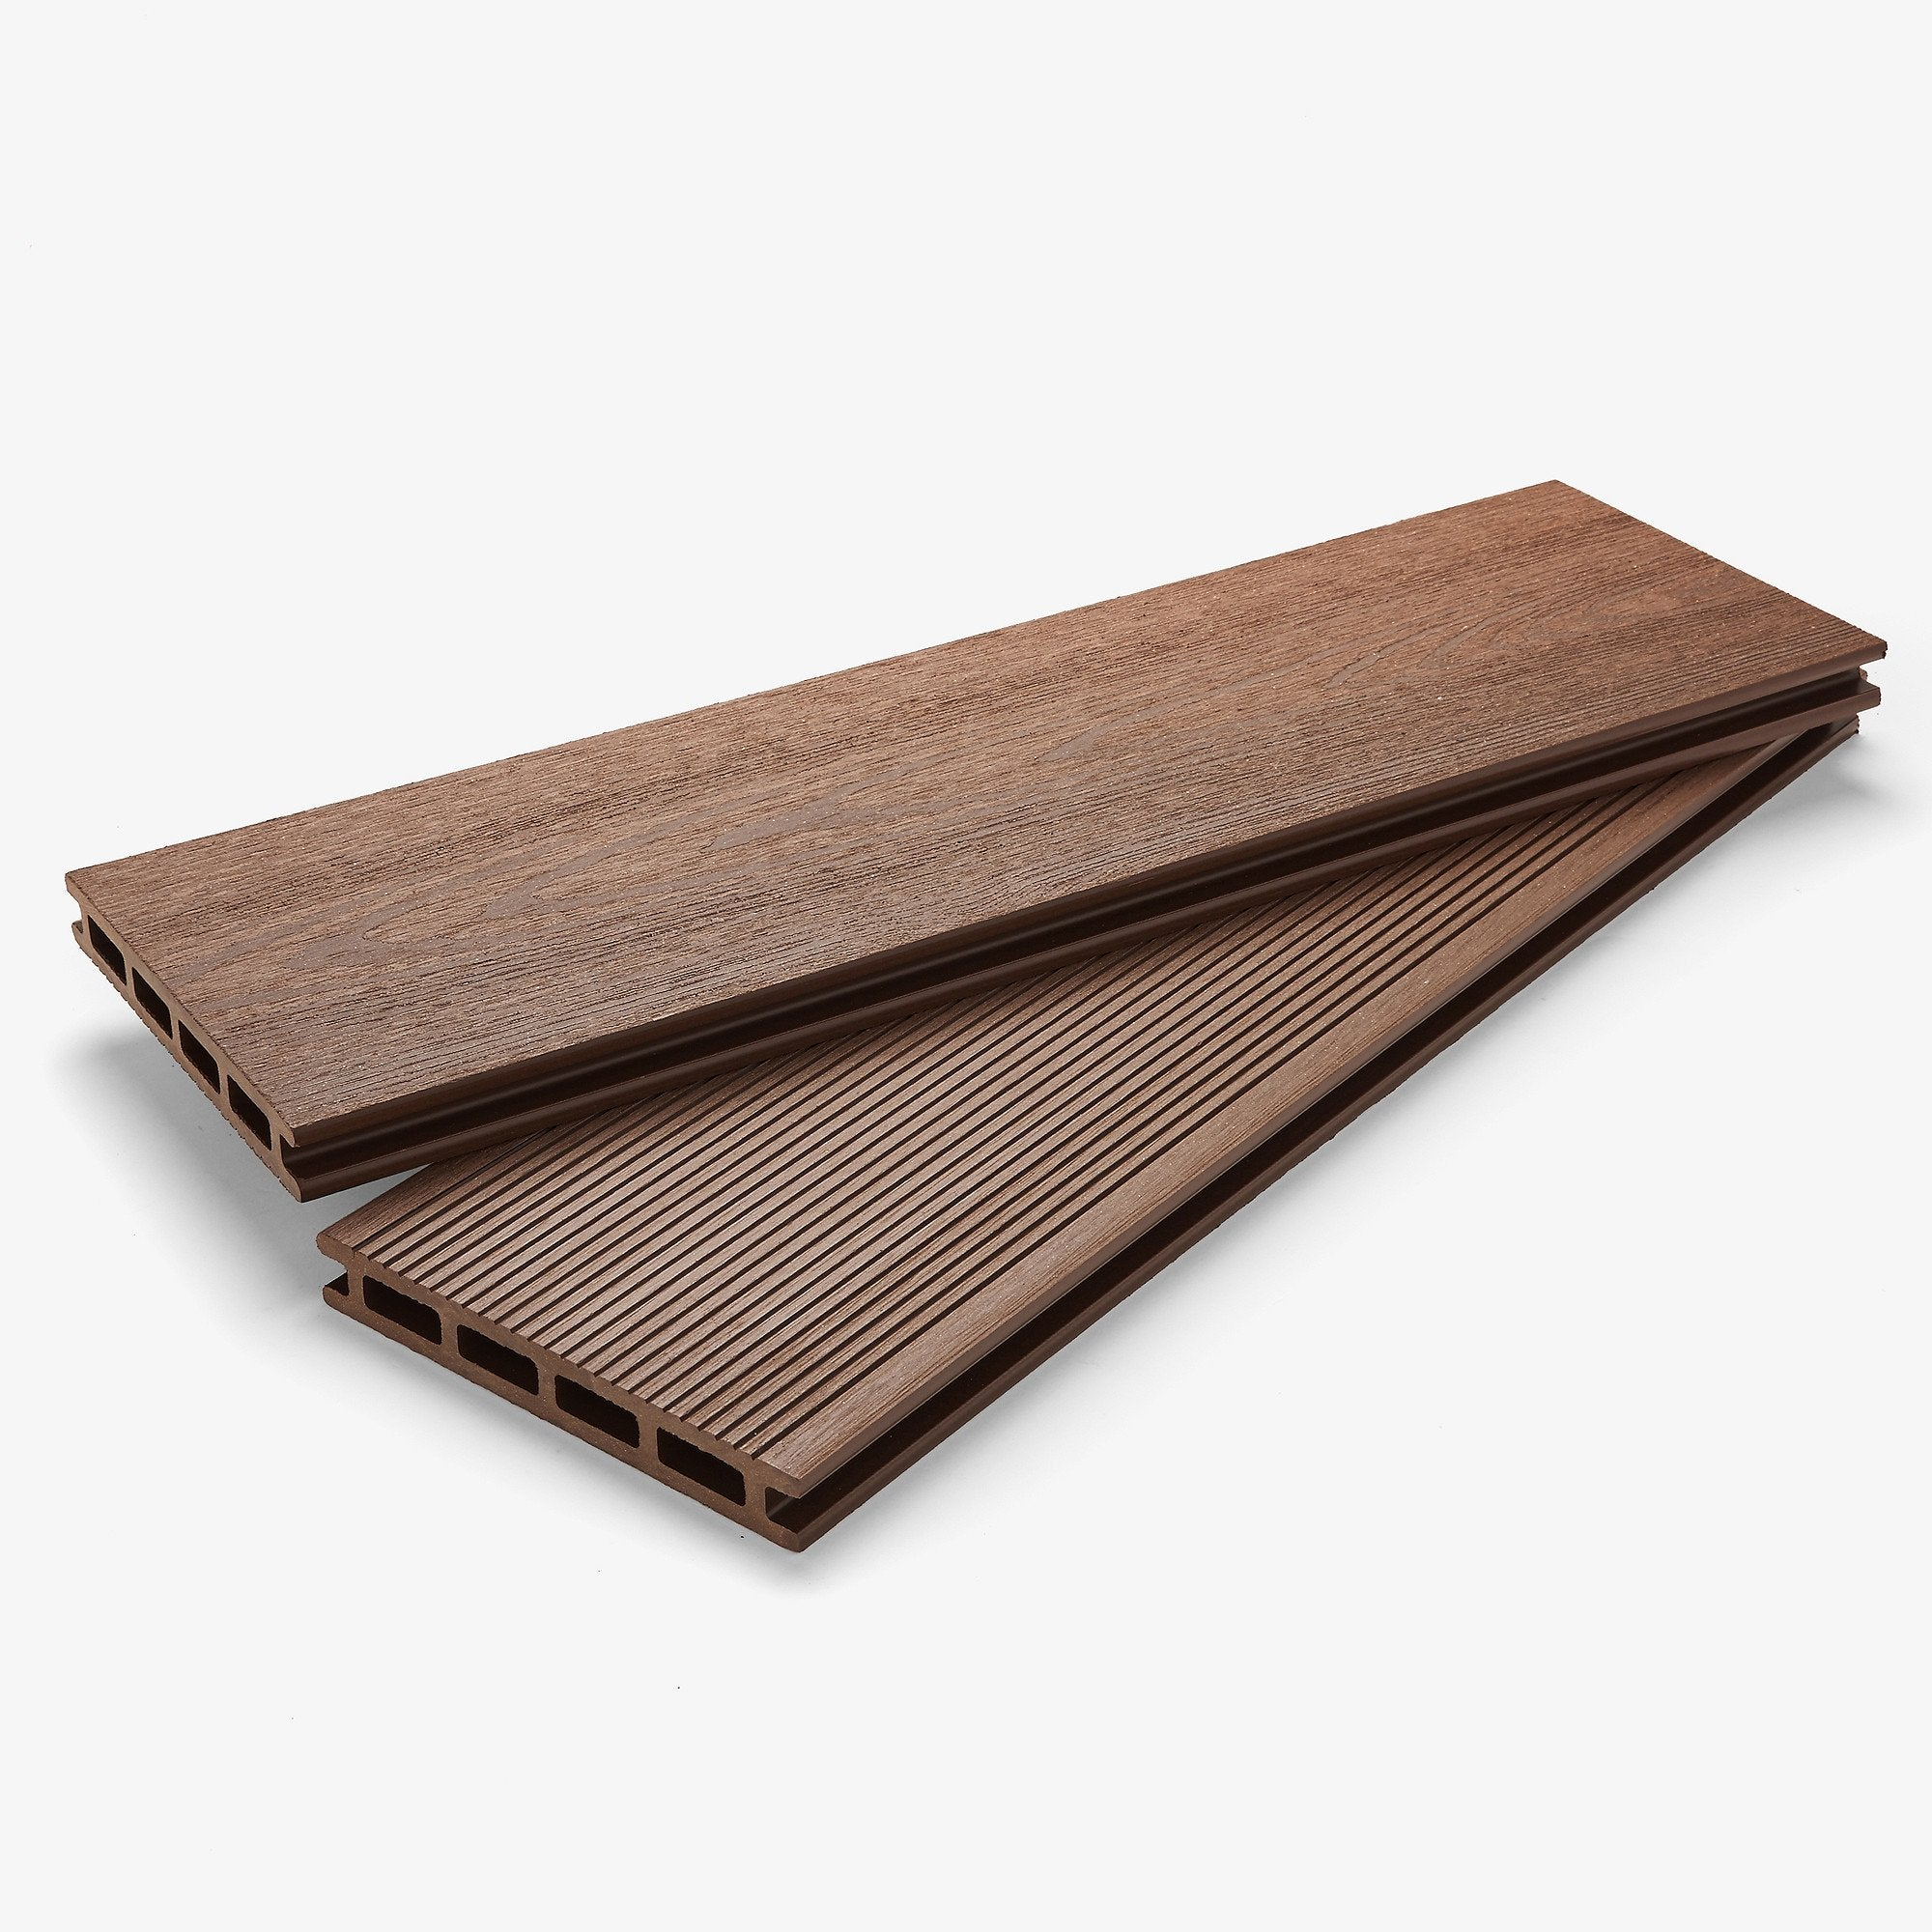 Composite Deck Board - Walnut Brown | HYPERION Decking